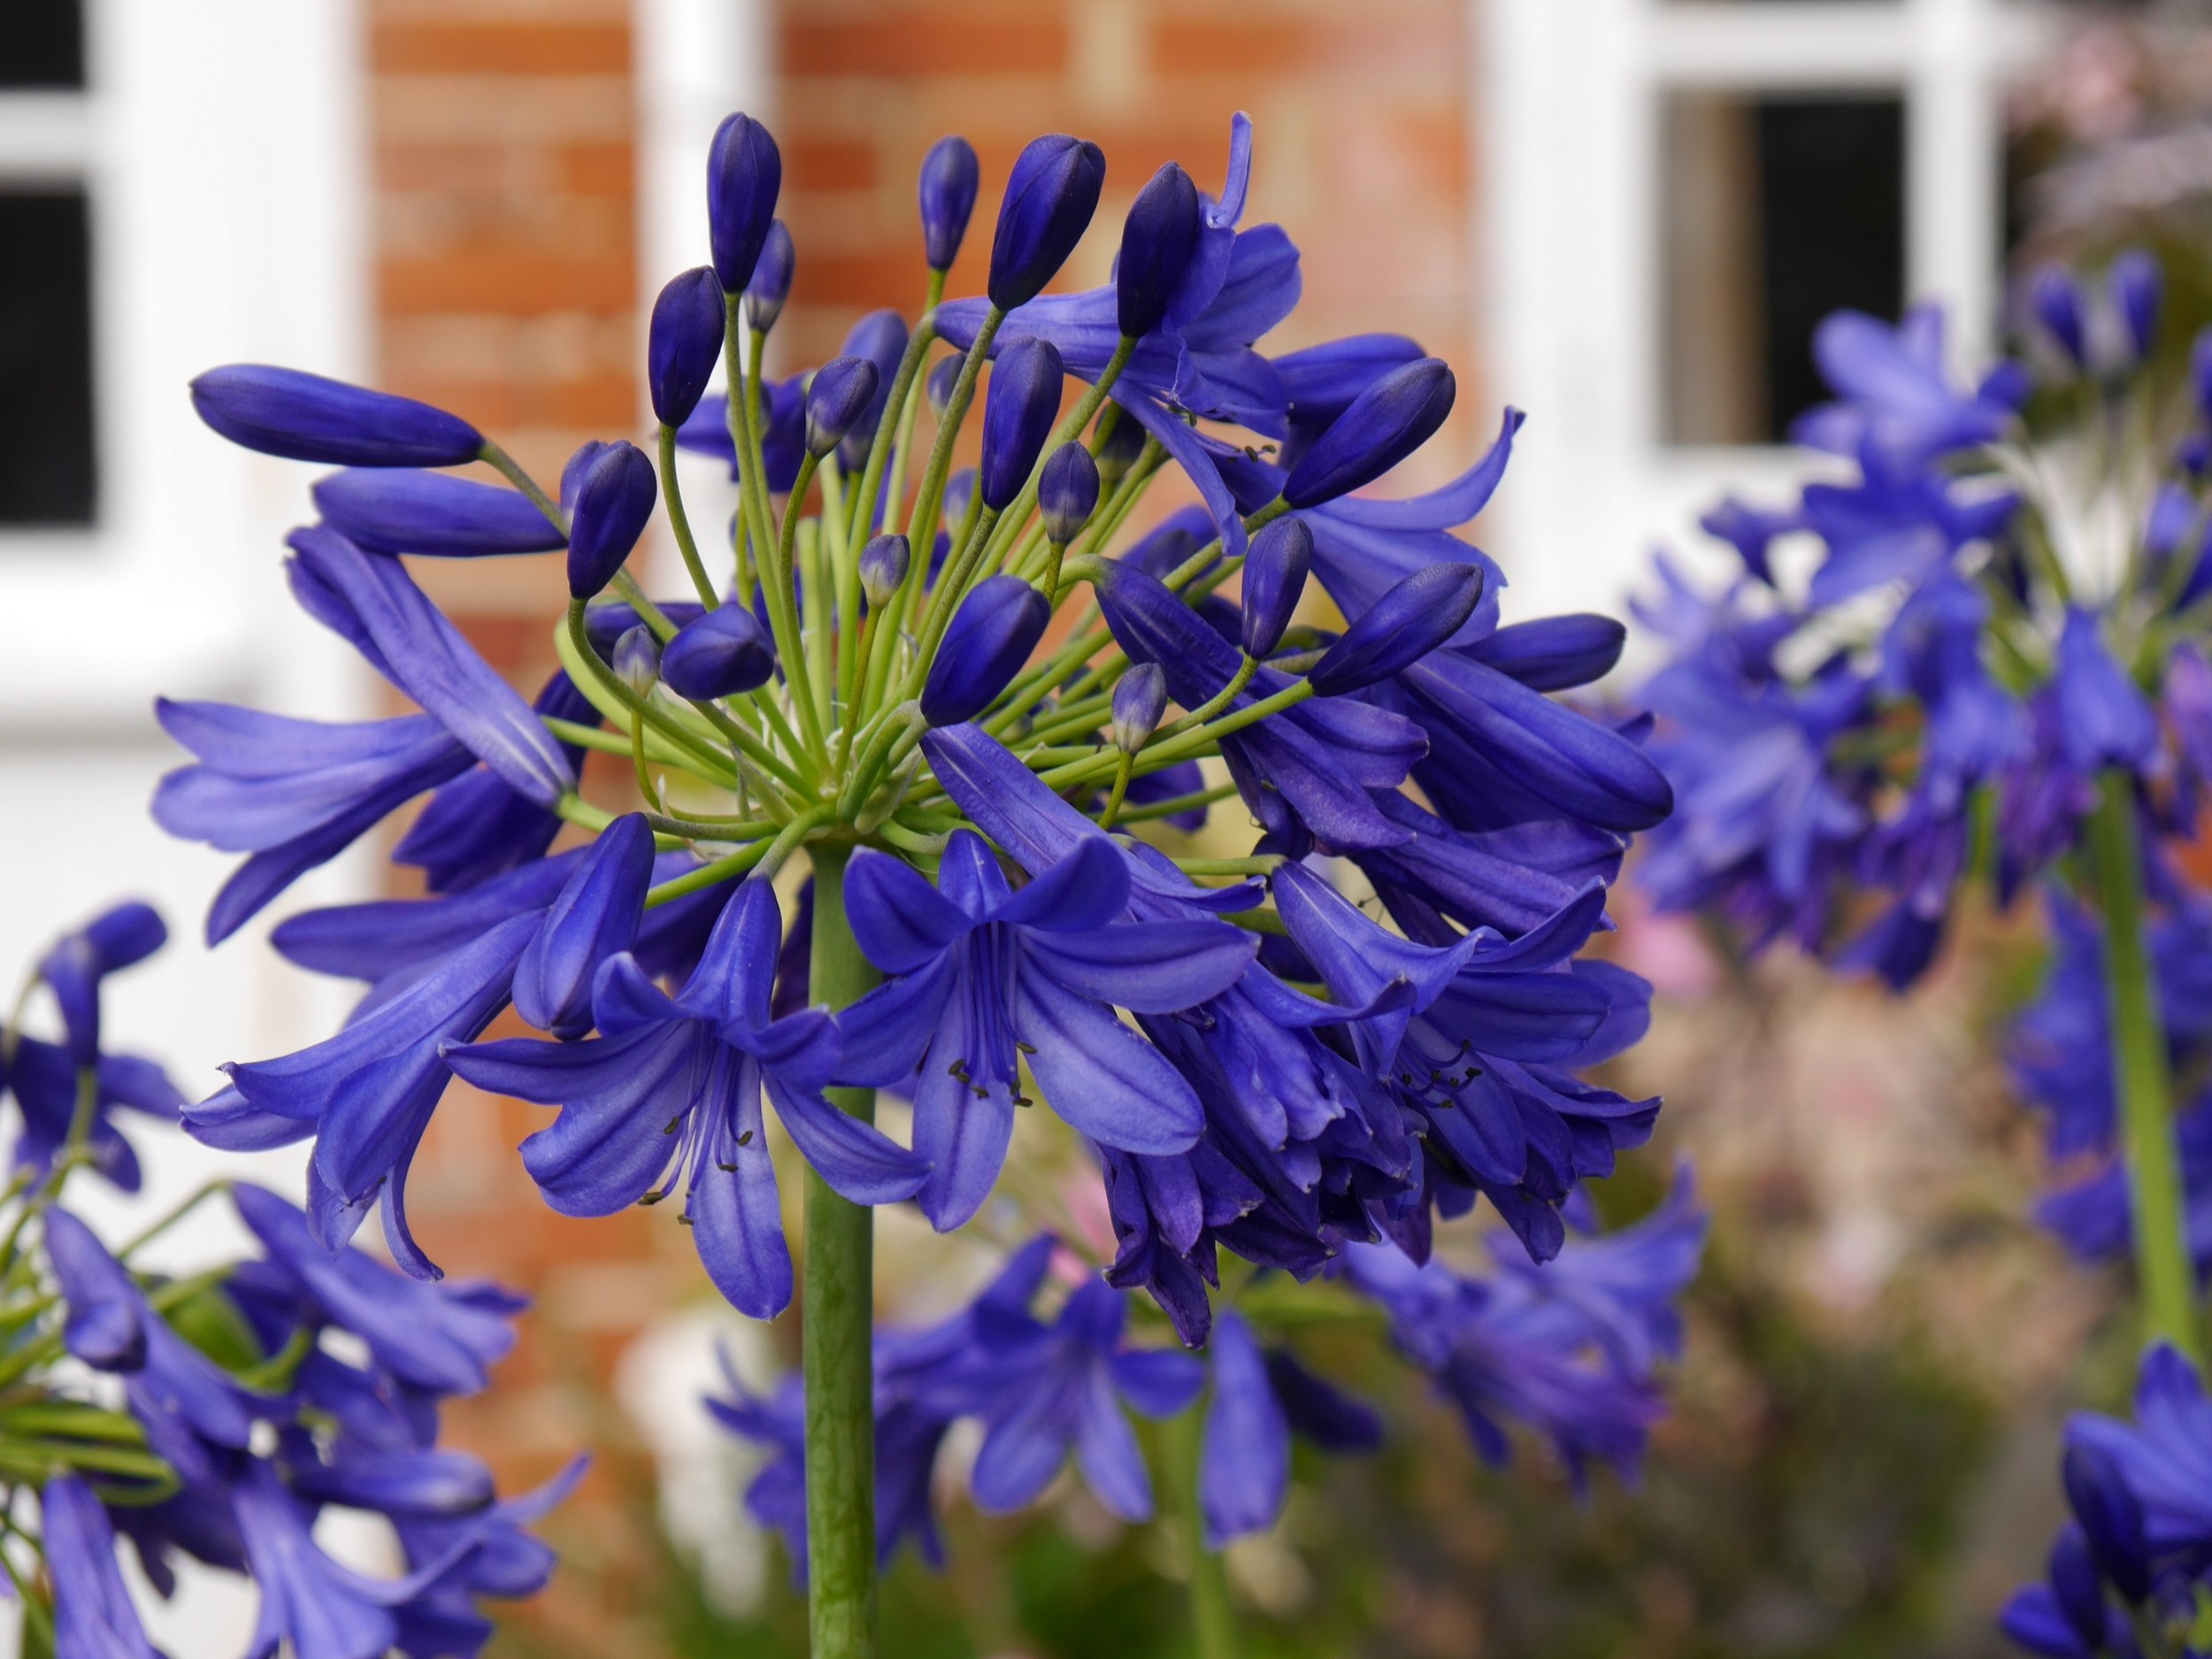 Agapanthus 'Flower of Love' - Deciduous. A free flowering Agapanthus with dark blue flowers. Full sun. Height 60cm and spread 50cmAvailable